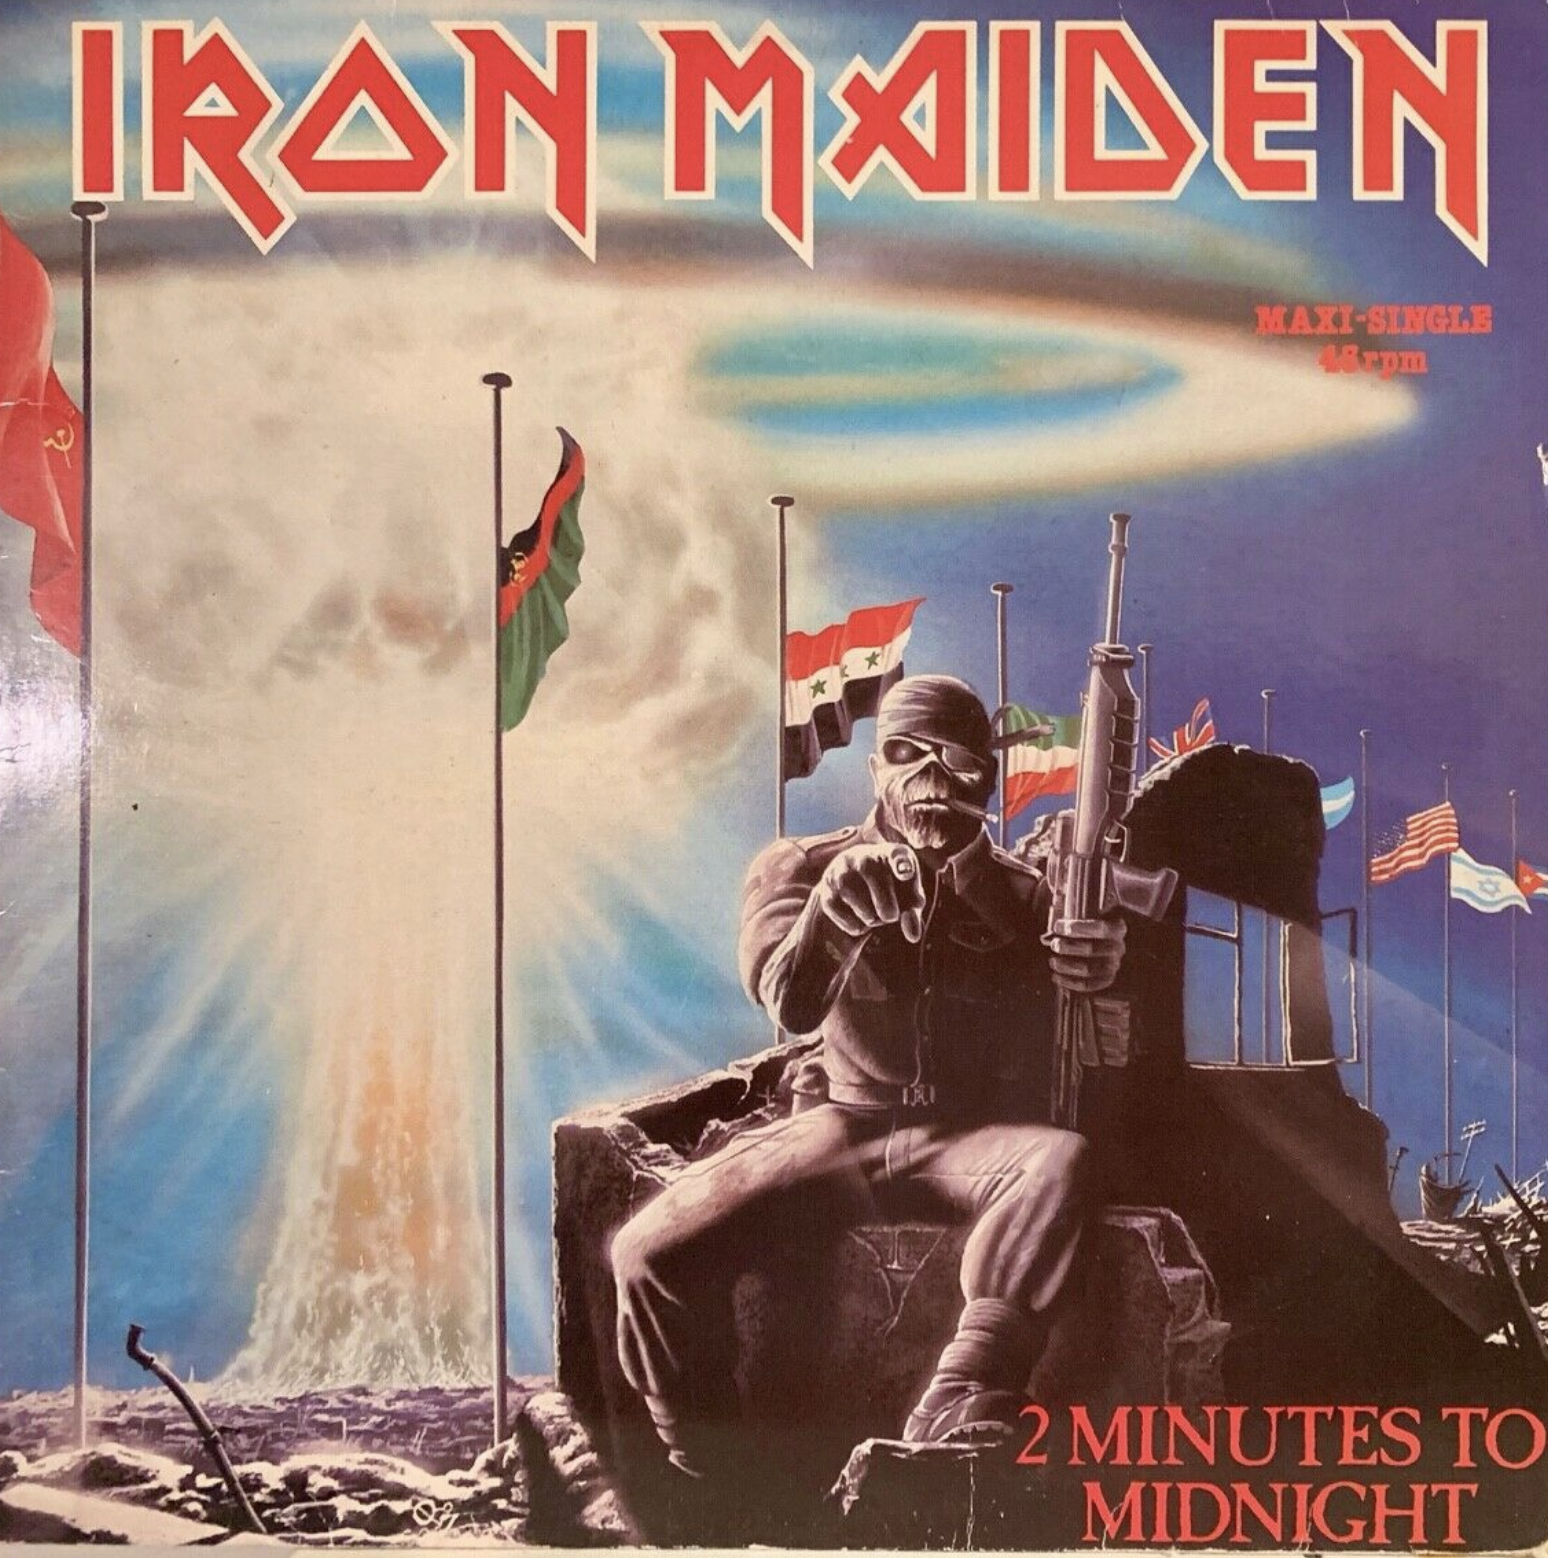 Iron Maiden 2 MINUTES TO MIDNIGHT 7""